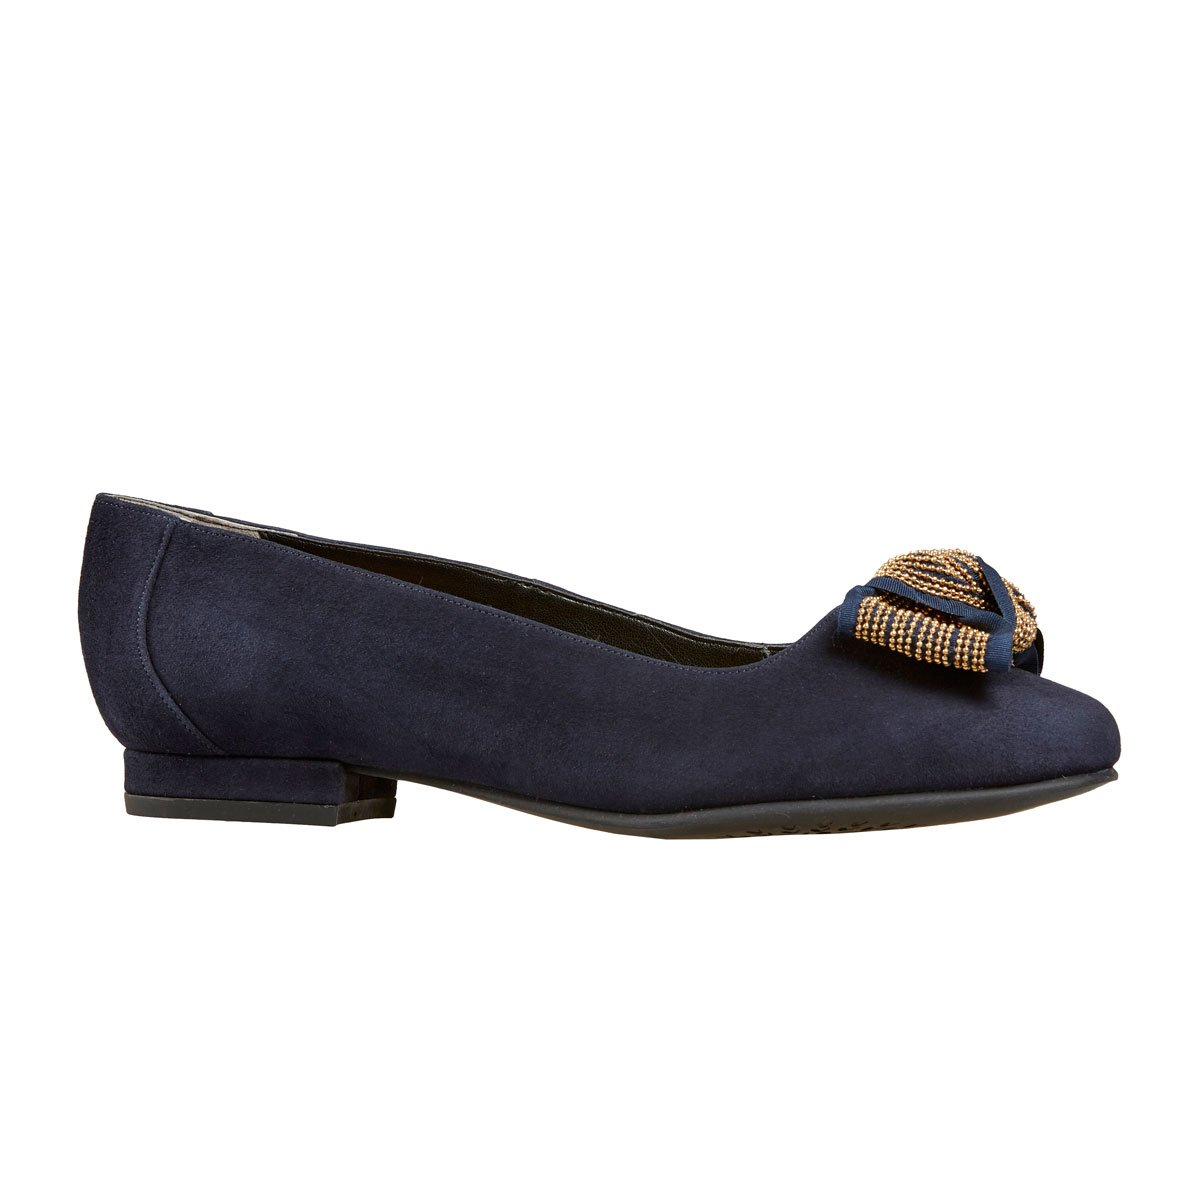 Van Dal Womens Meriwether Wide Fitting Ballet Pumps  Amazon.co.uk  Shoes    Bags 58982bfc8